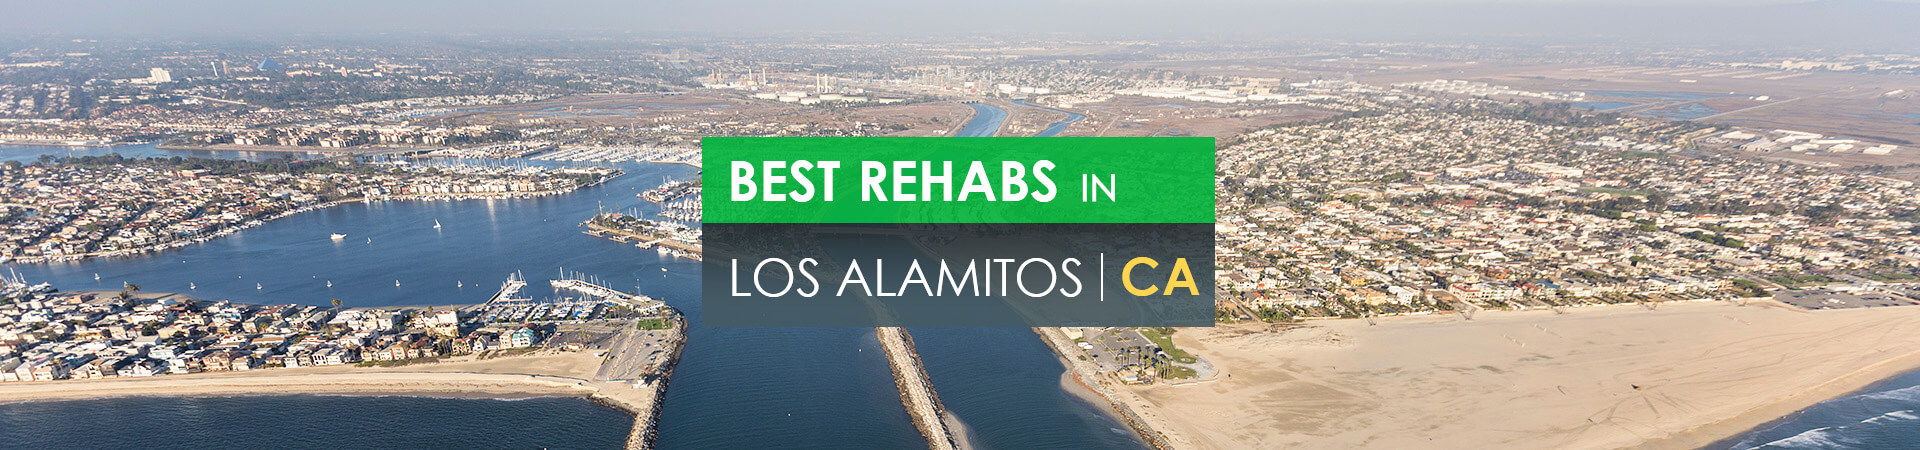 Best rehabs in Los Alamitos, CA